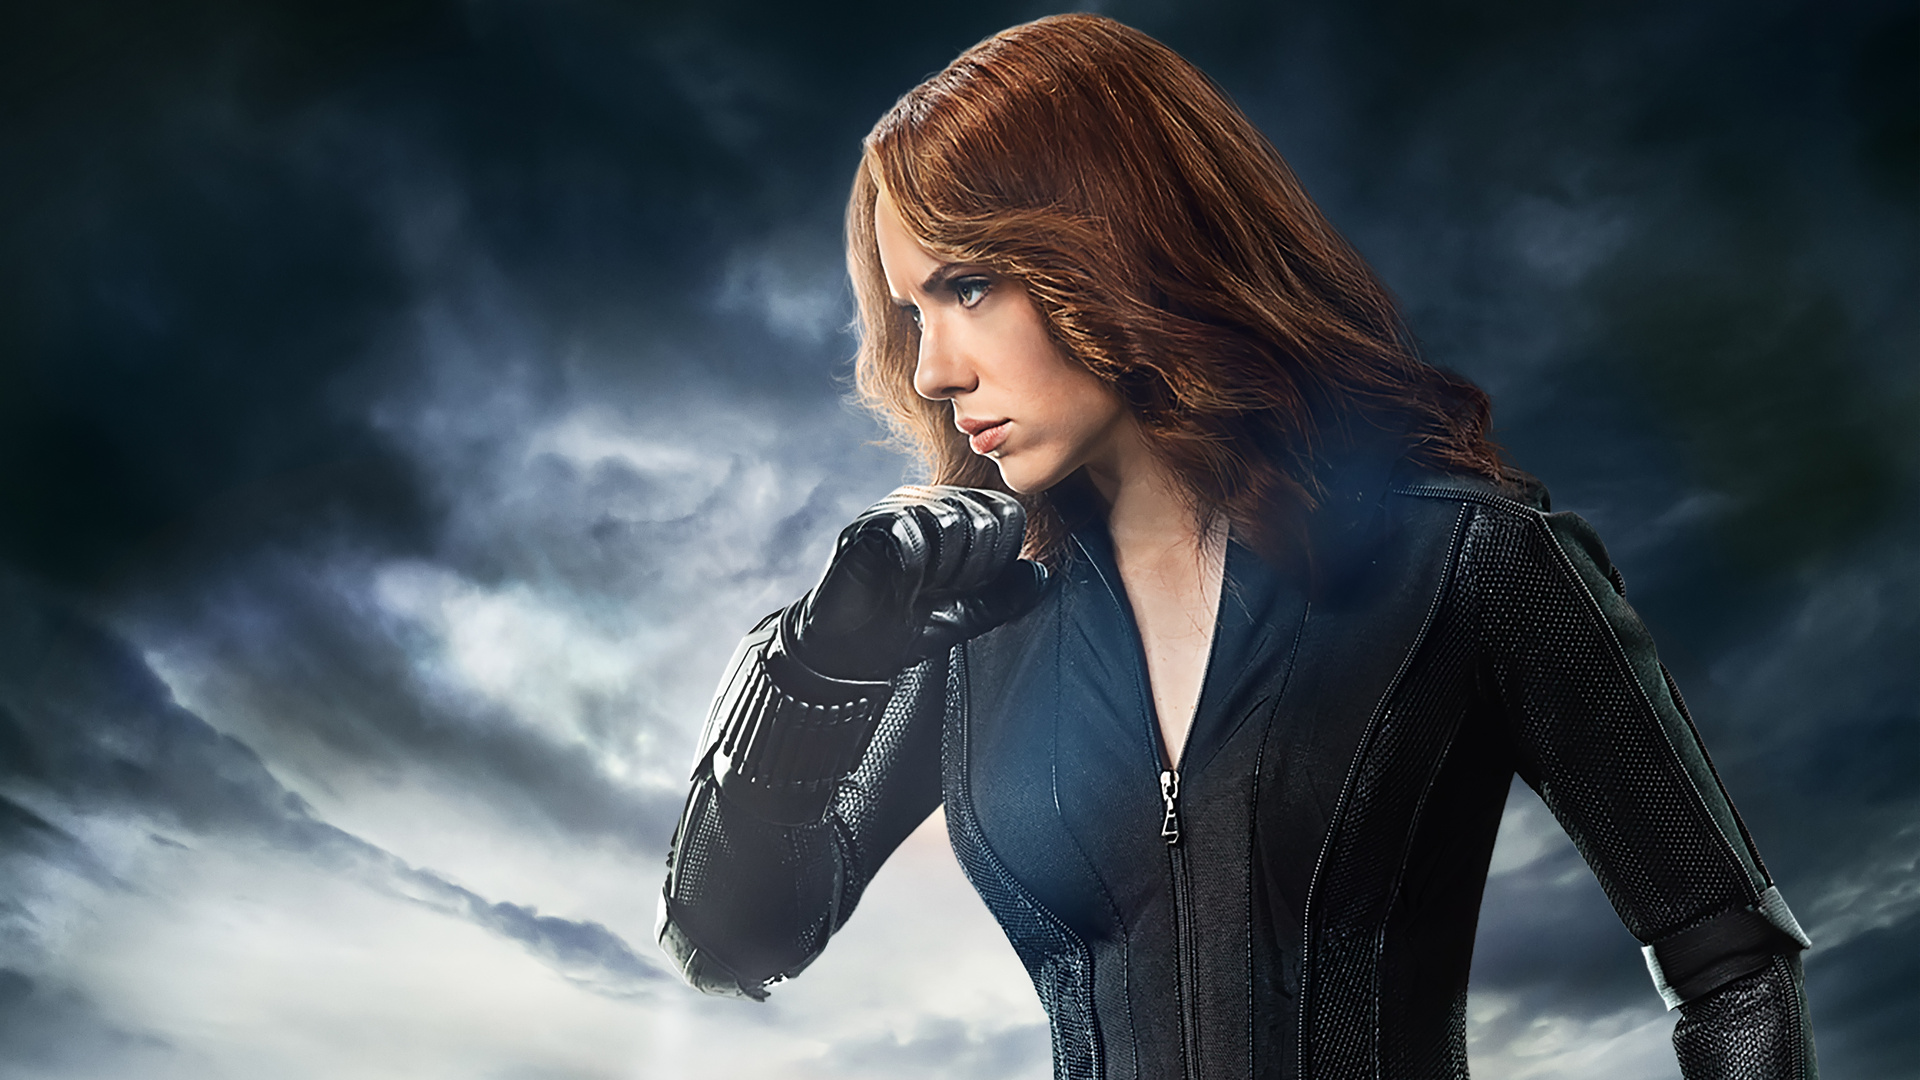 1920x1080 Black Widow Natasha Romanoff 8K Laptop Full HD ...